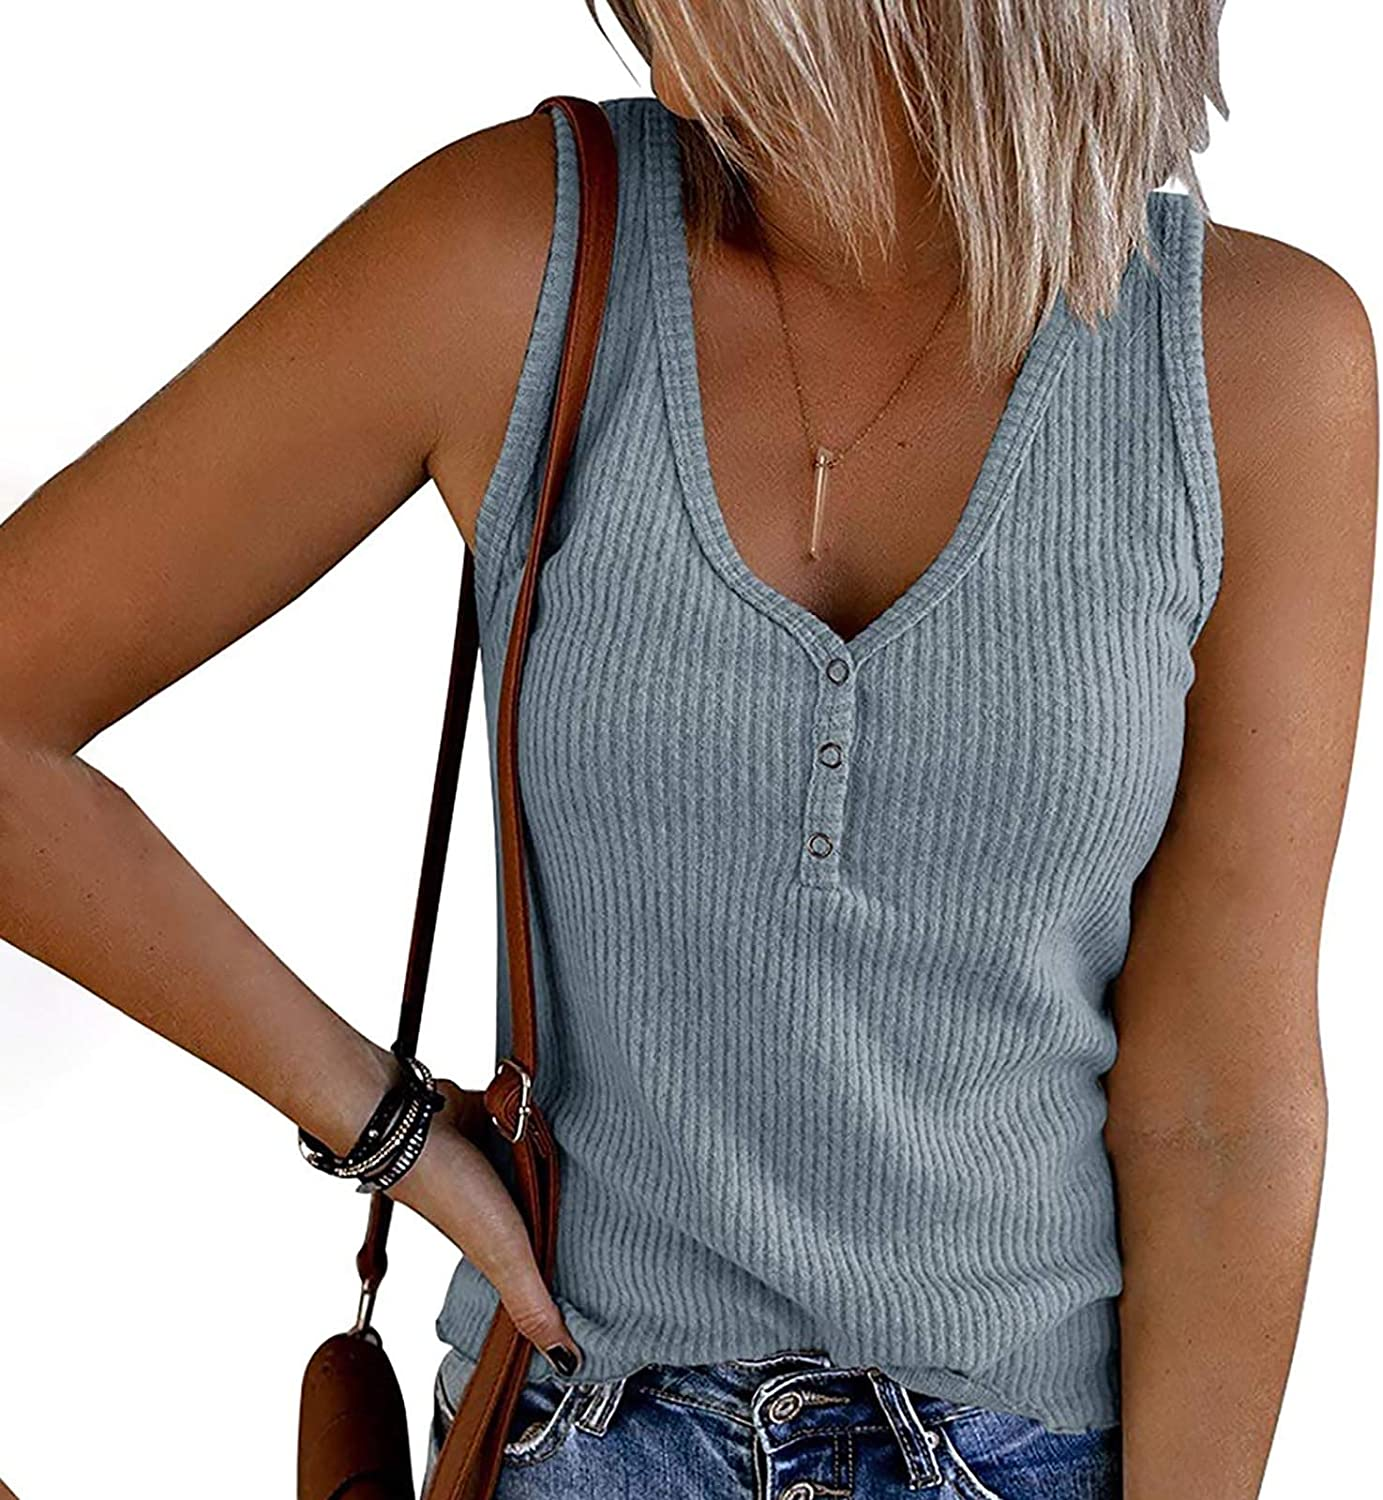 Summer Tops for Women Casual,Womens Tank Tops V Neck Sleeveless Loose Button Up Henley Tee Shirts Blouse Vest Tunic